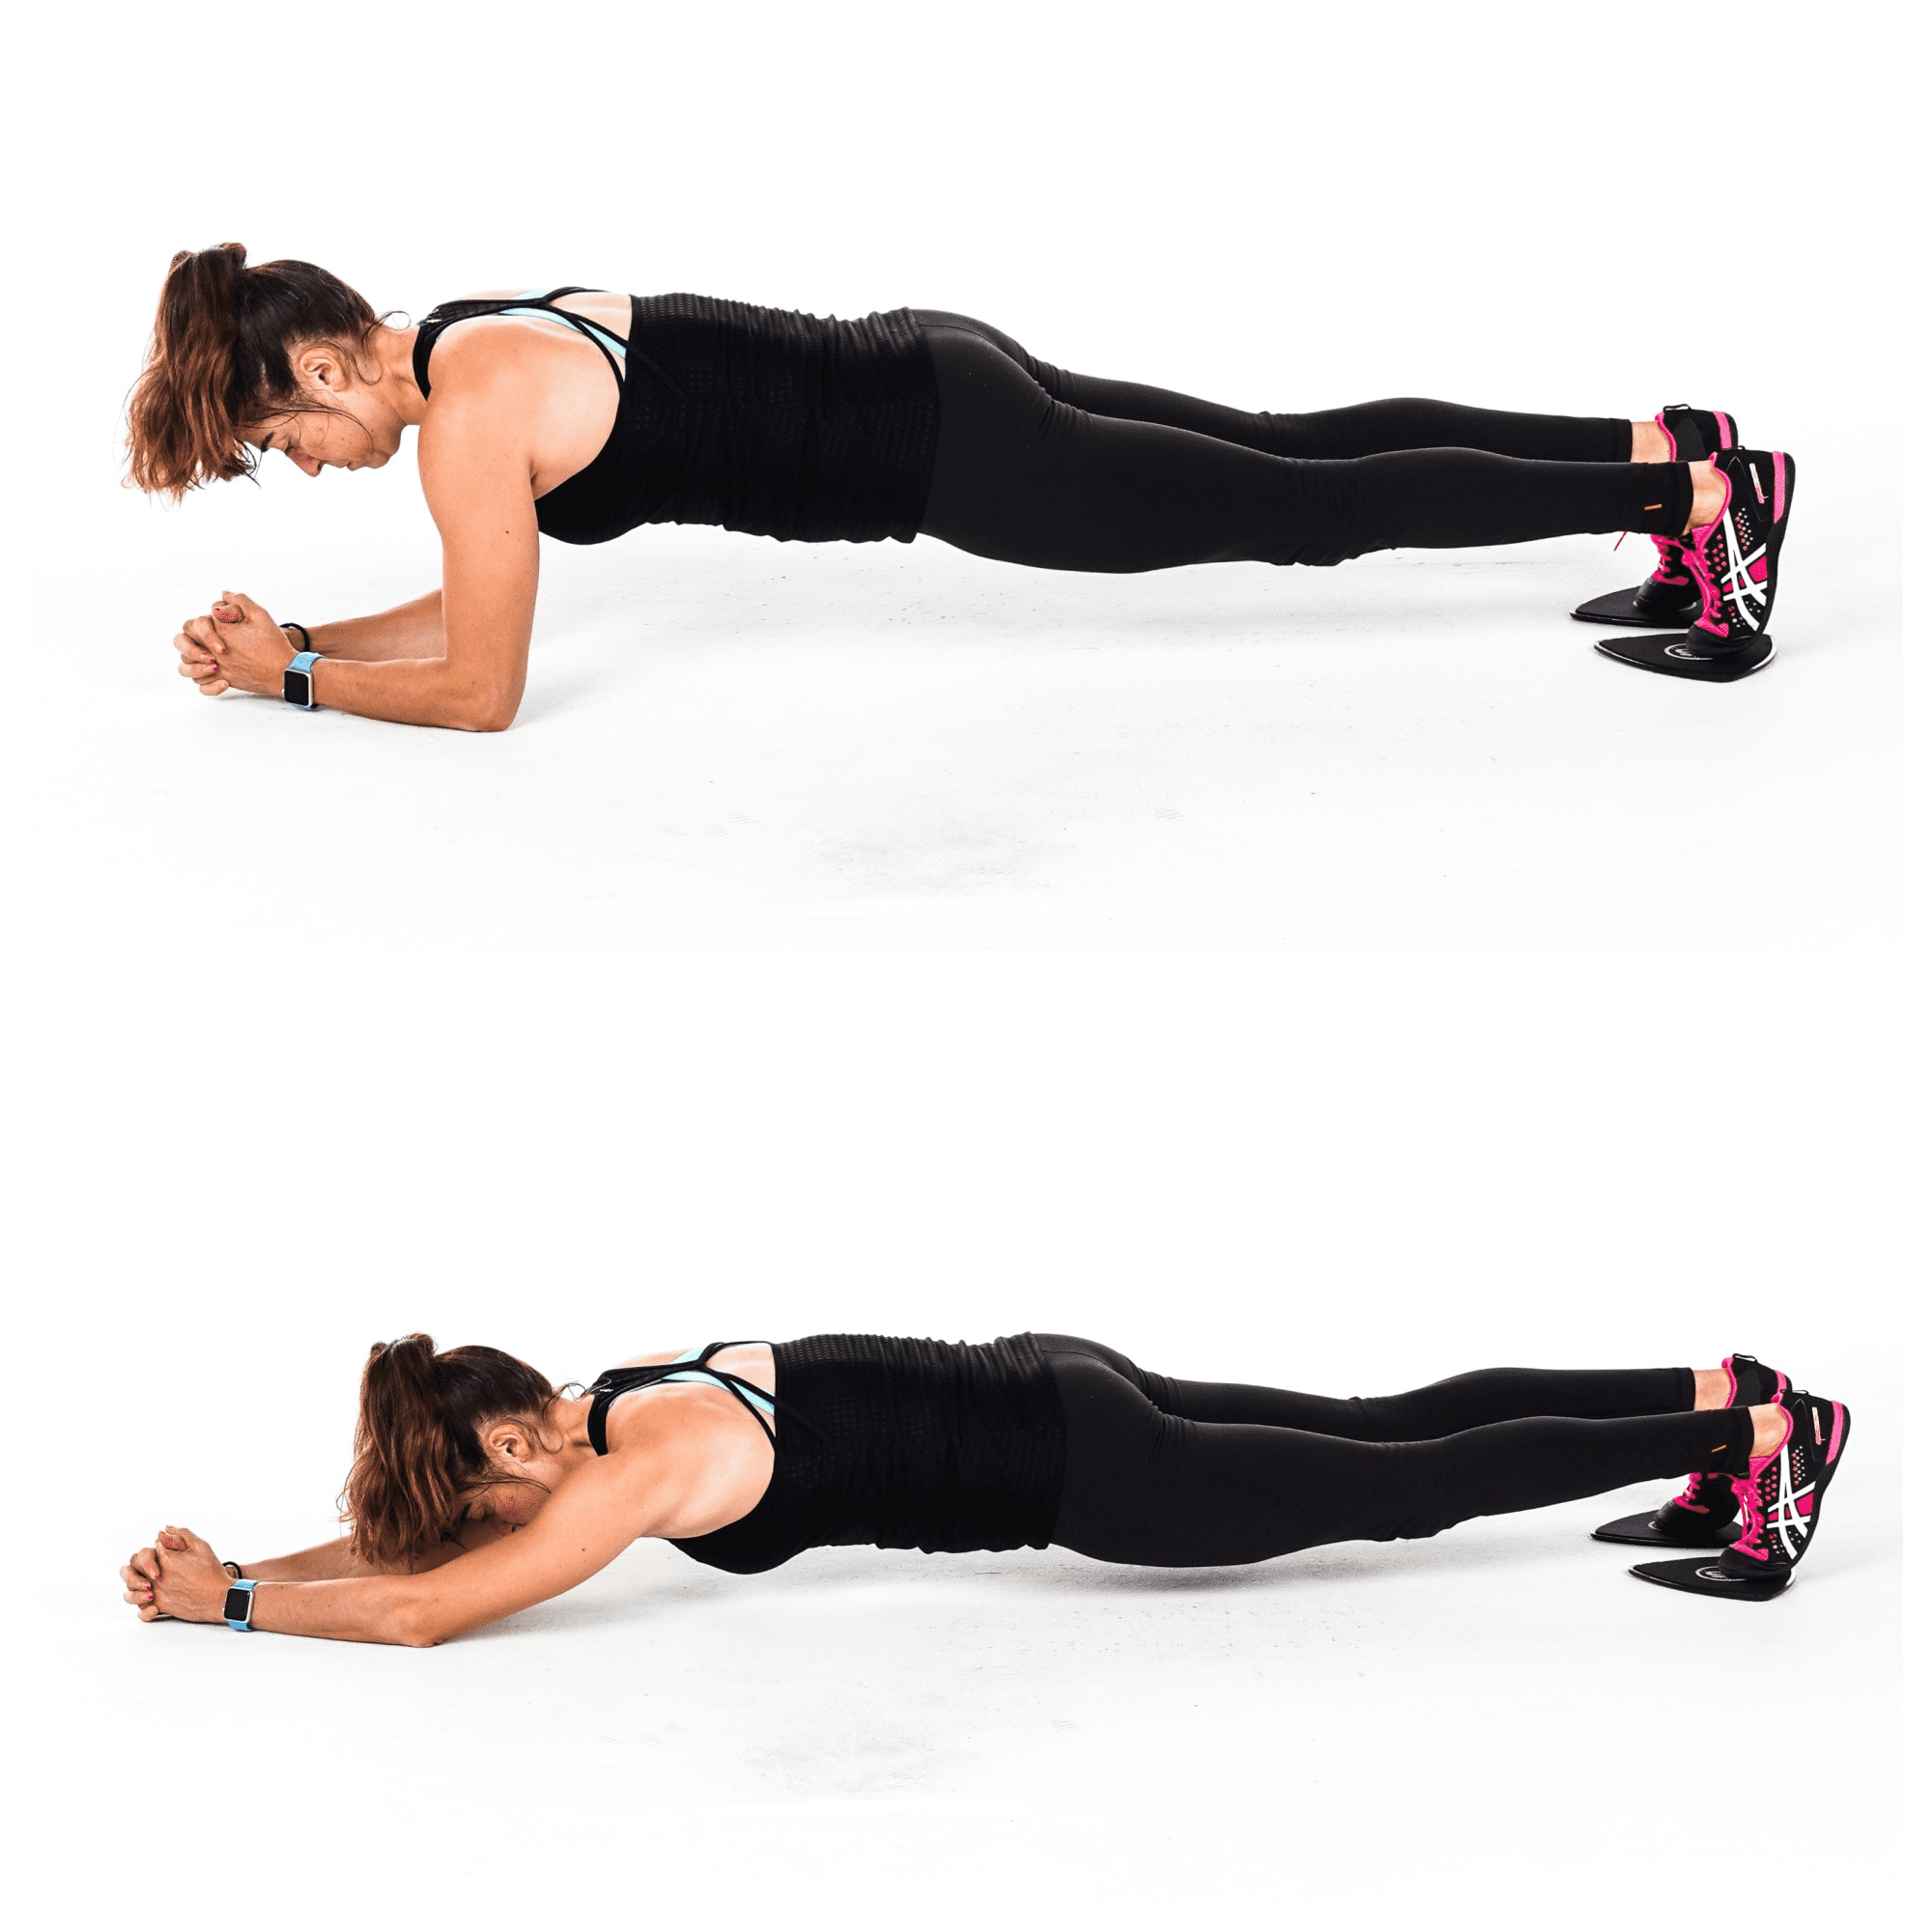 slider body saw plank exercise